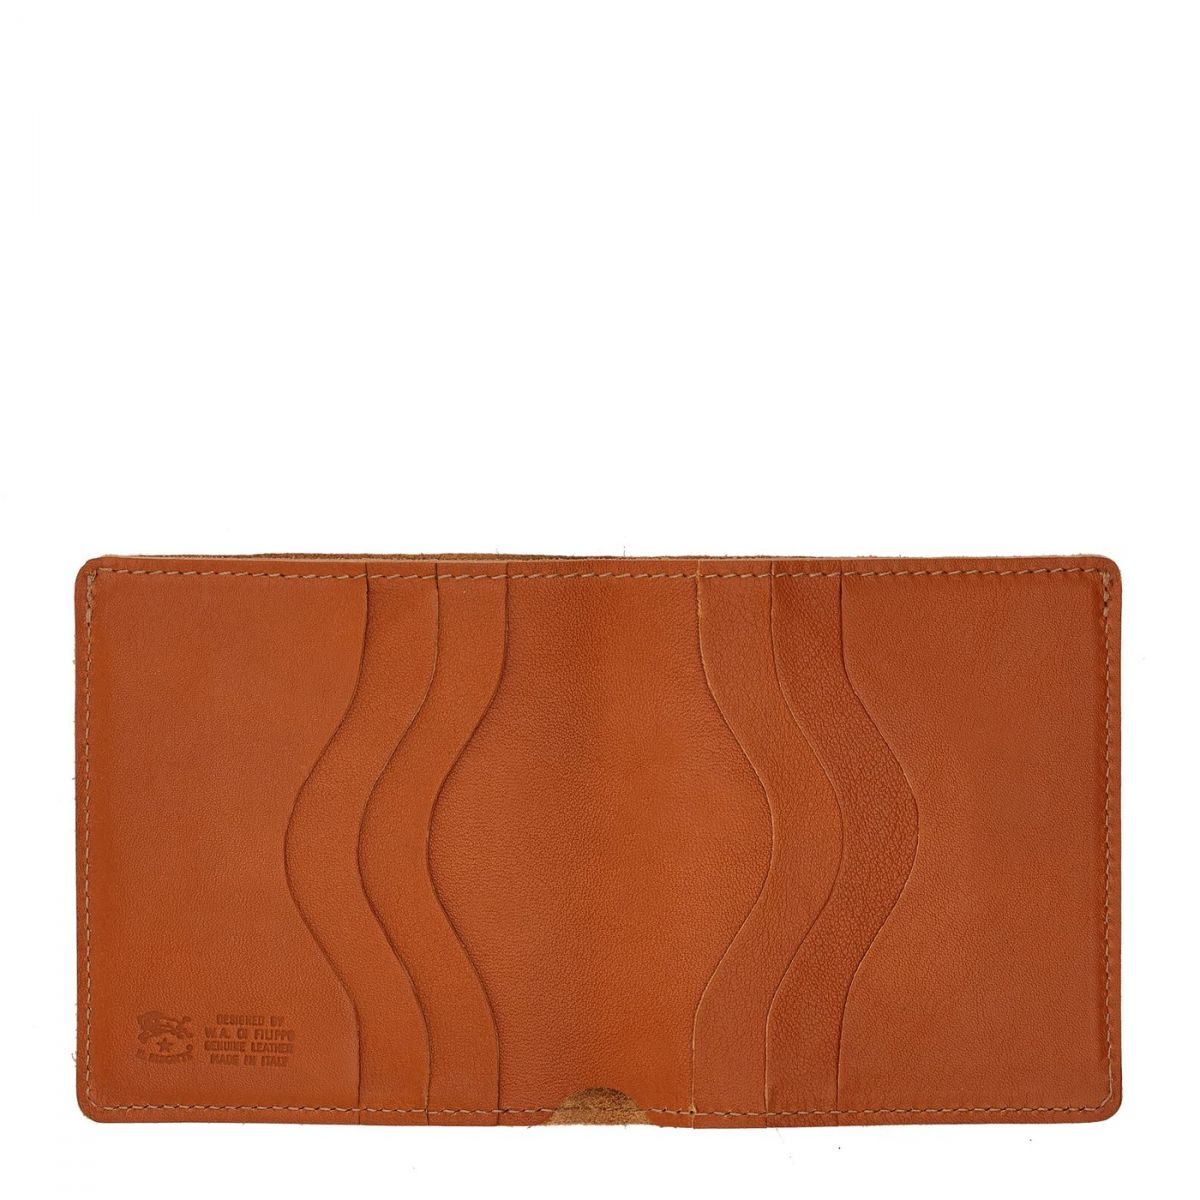 Men's Bi-Fold Wallet  in Cowhide Double Leather SBW004 color Caramel | Details